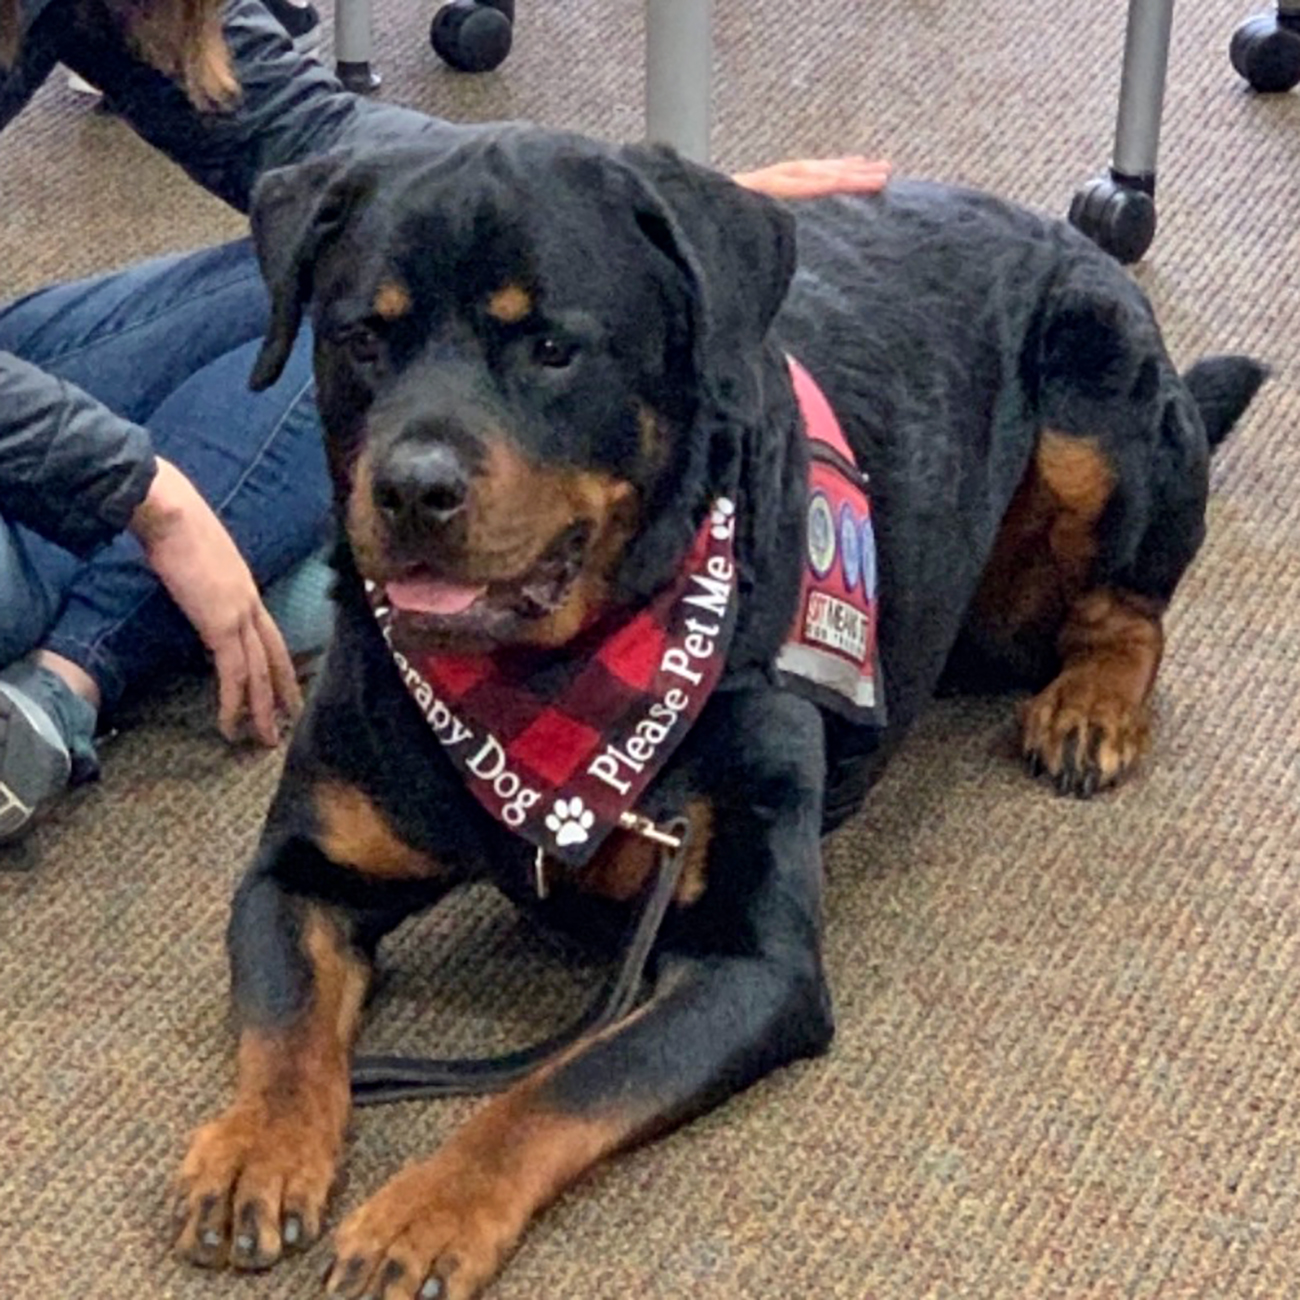 Max, the therapy dog, wearing a pet-me bandana